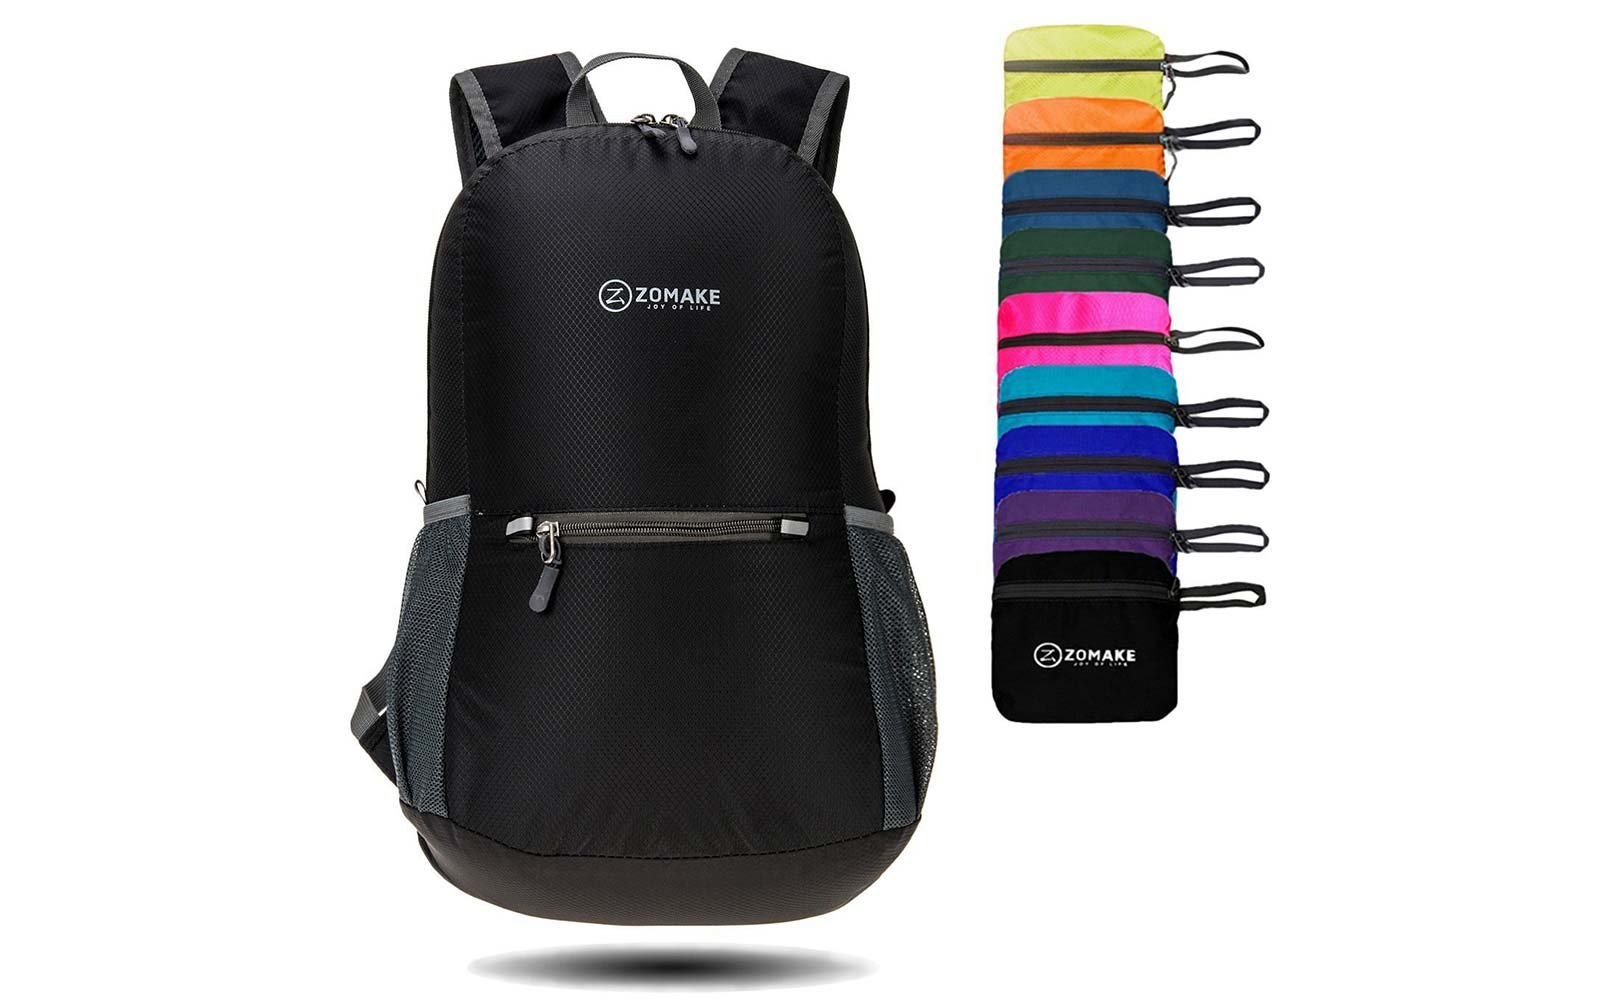 Zomake Packable Water Resistant Backpack Gift Guide Under 25